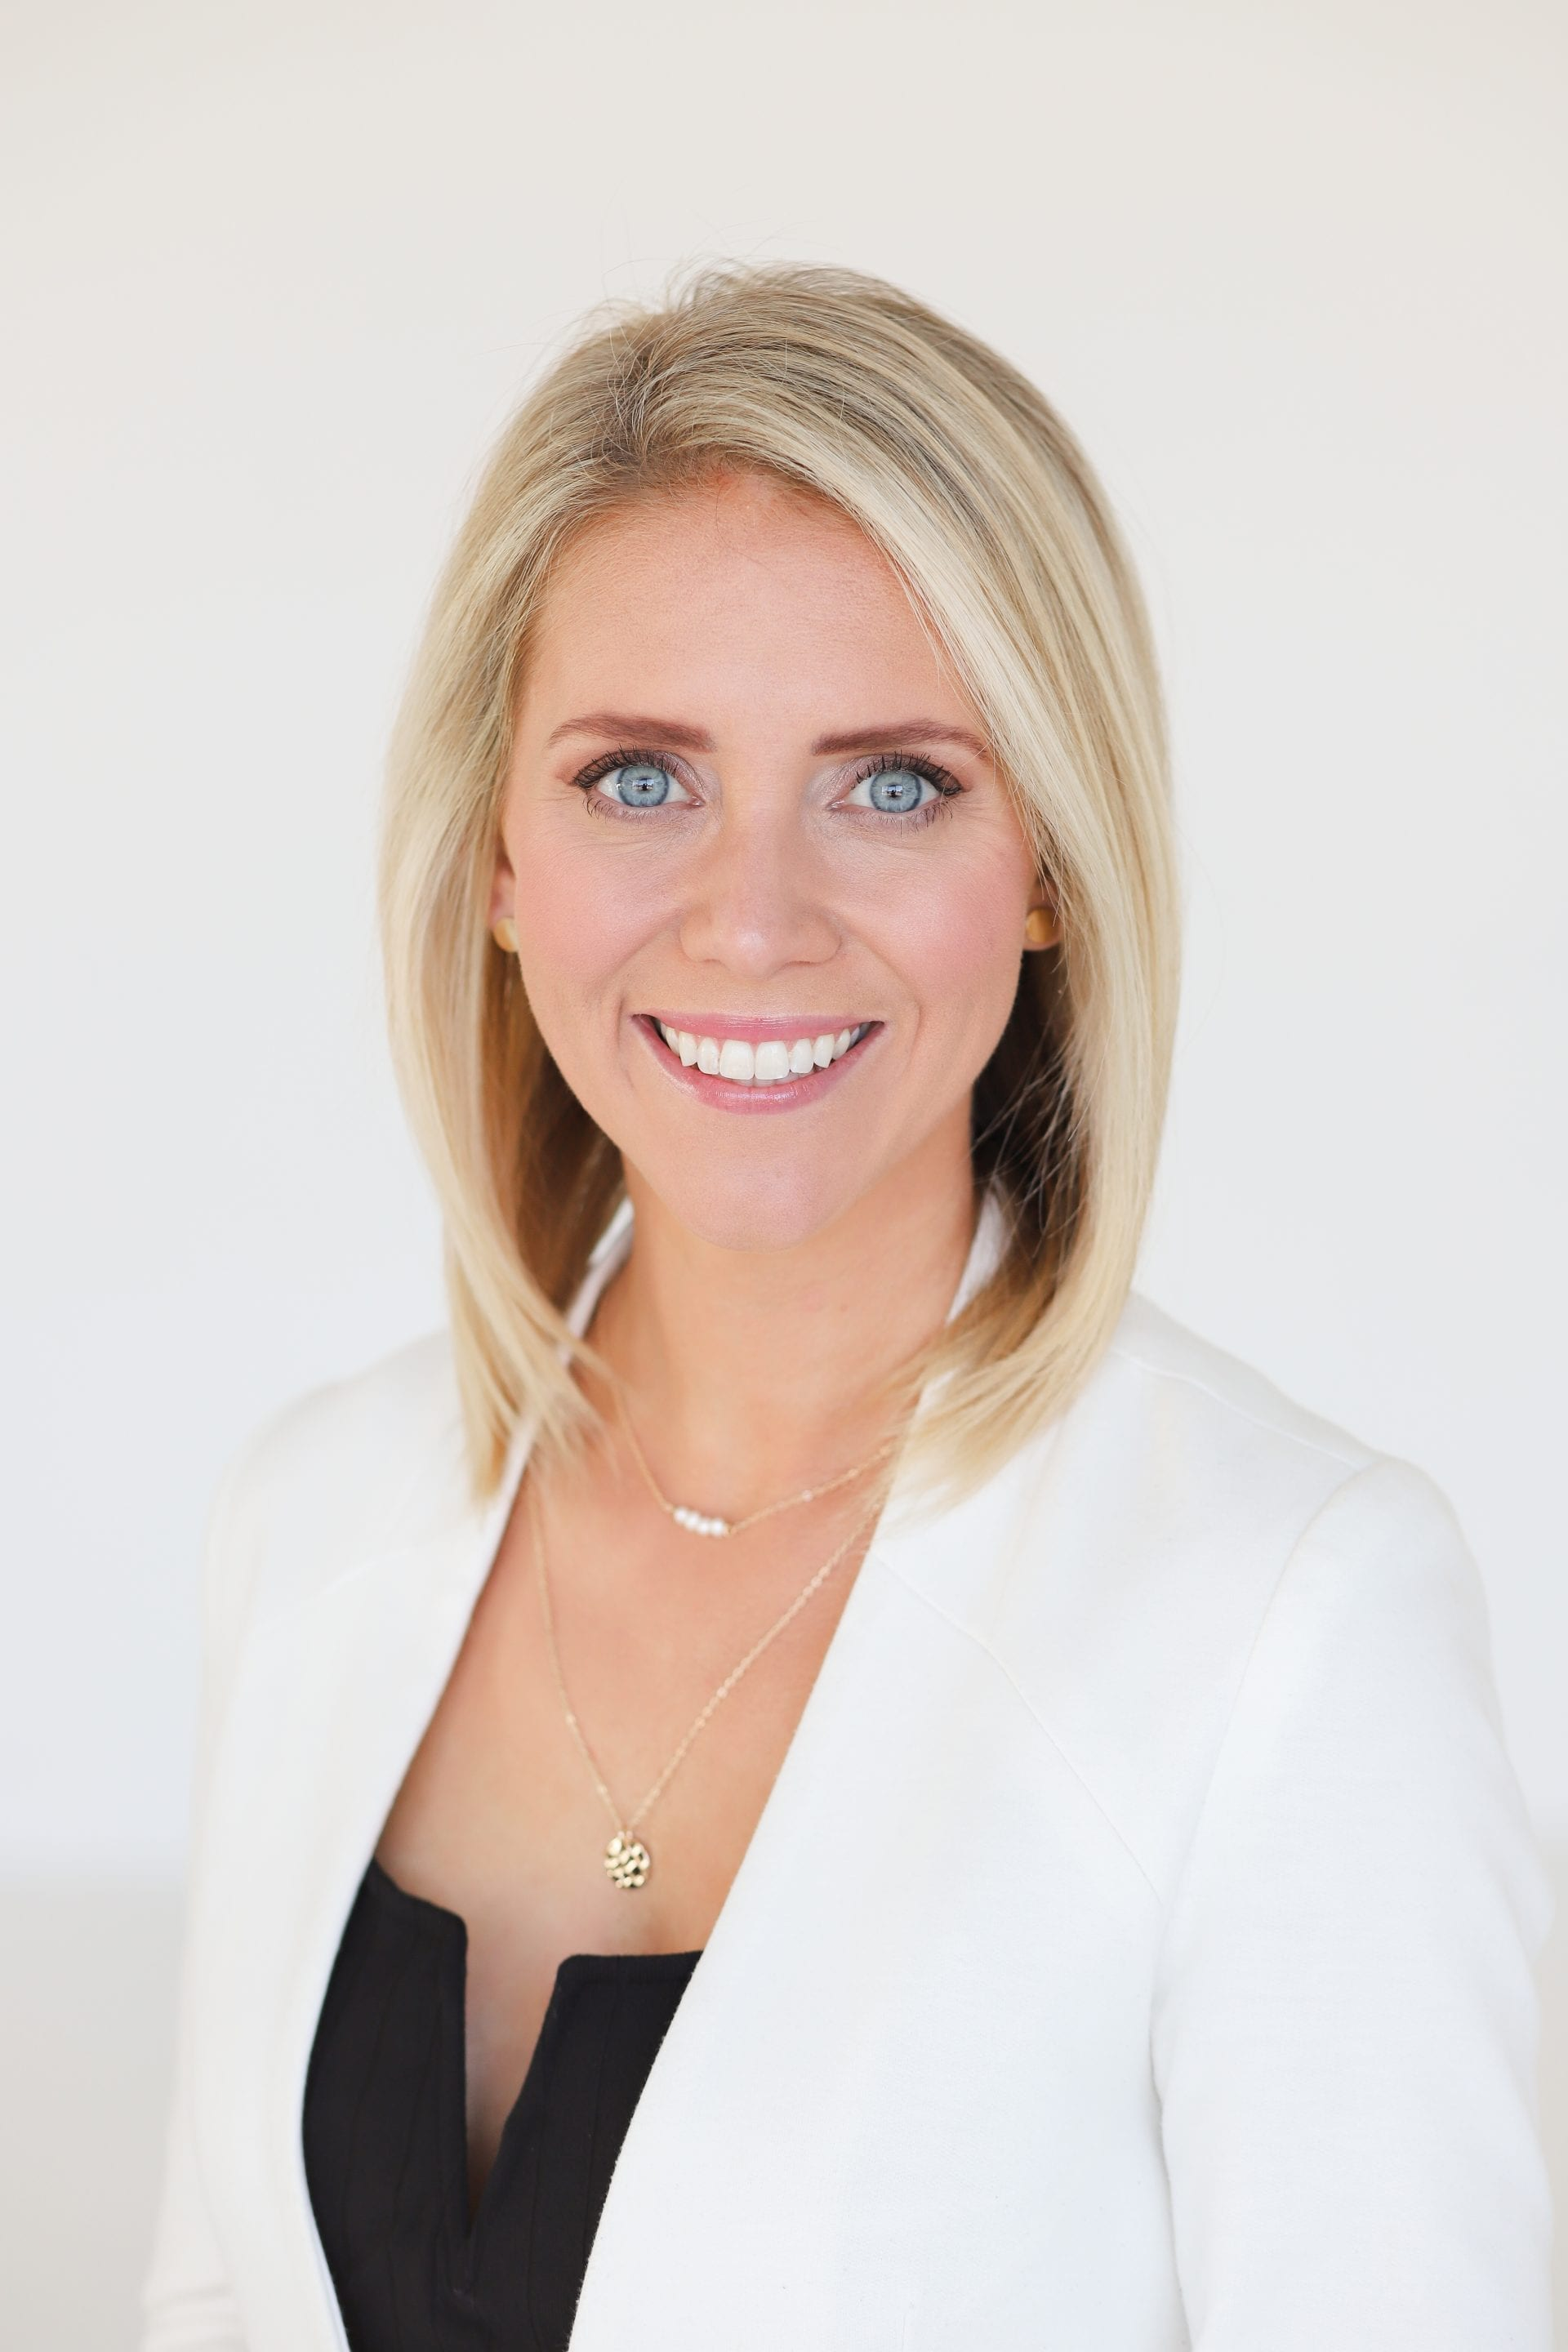 Brittany Obert is a licensed Realtor for custom home builders in DFW providing each client a seamless and premier experience when it comes to their custom home!